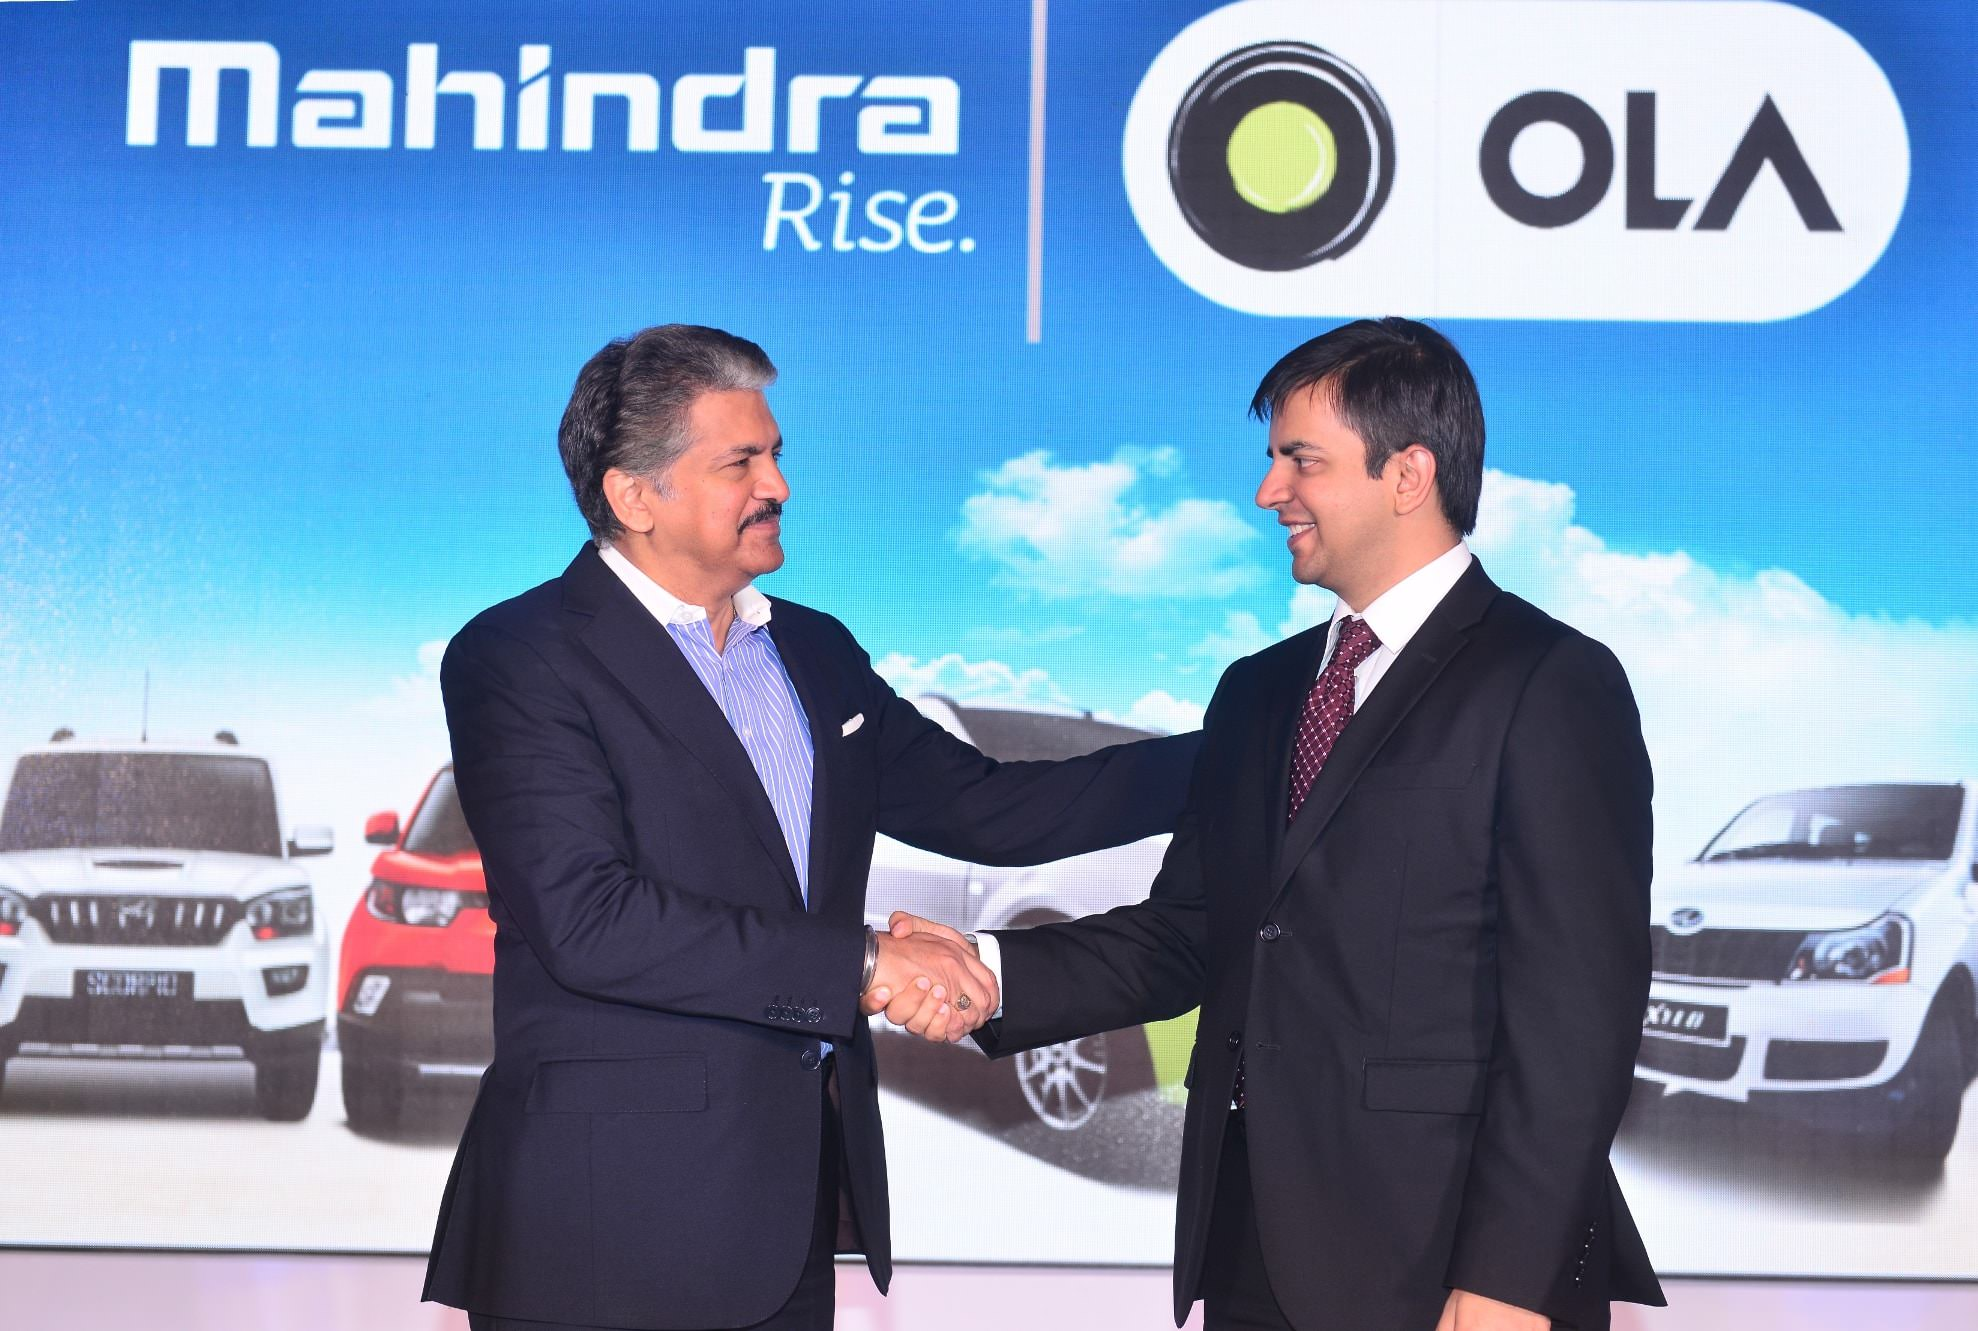 Ola signs MOU with Mahindra to empower 40, 000 driver partners by 2018- mybigplunge